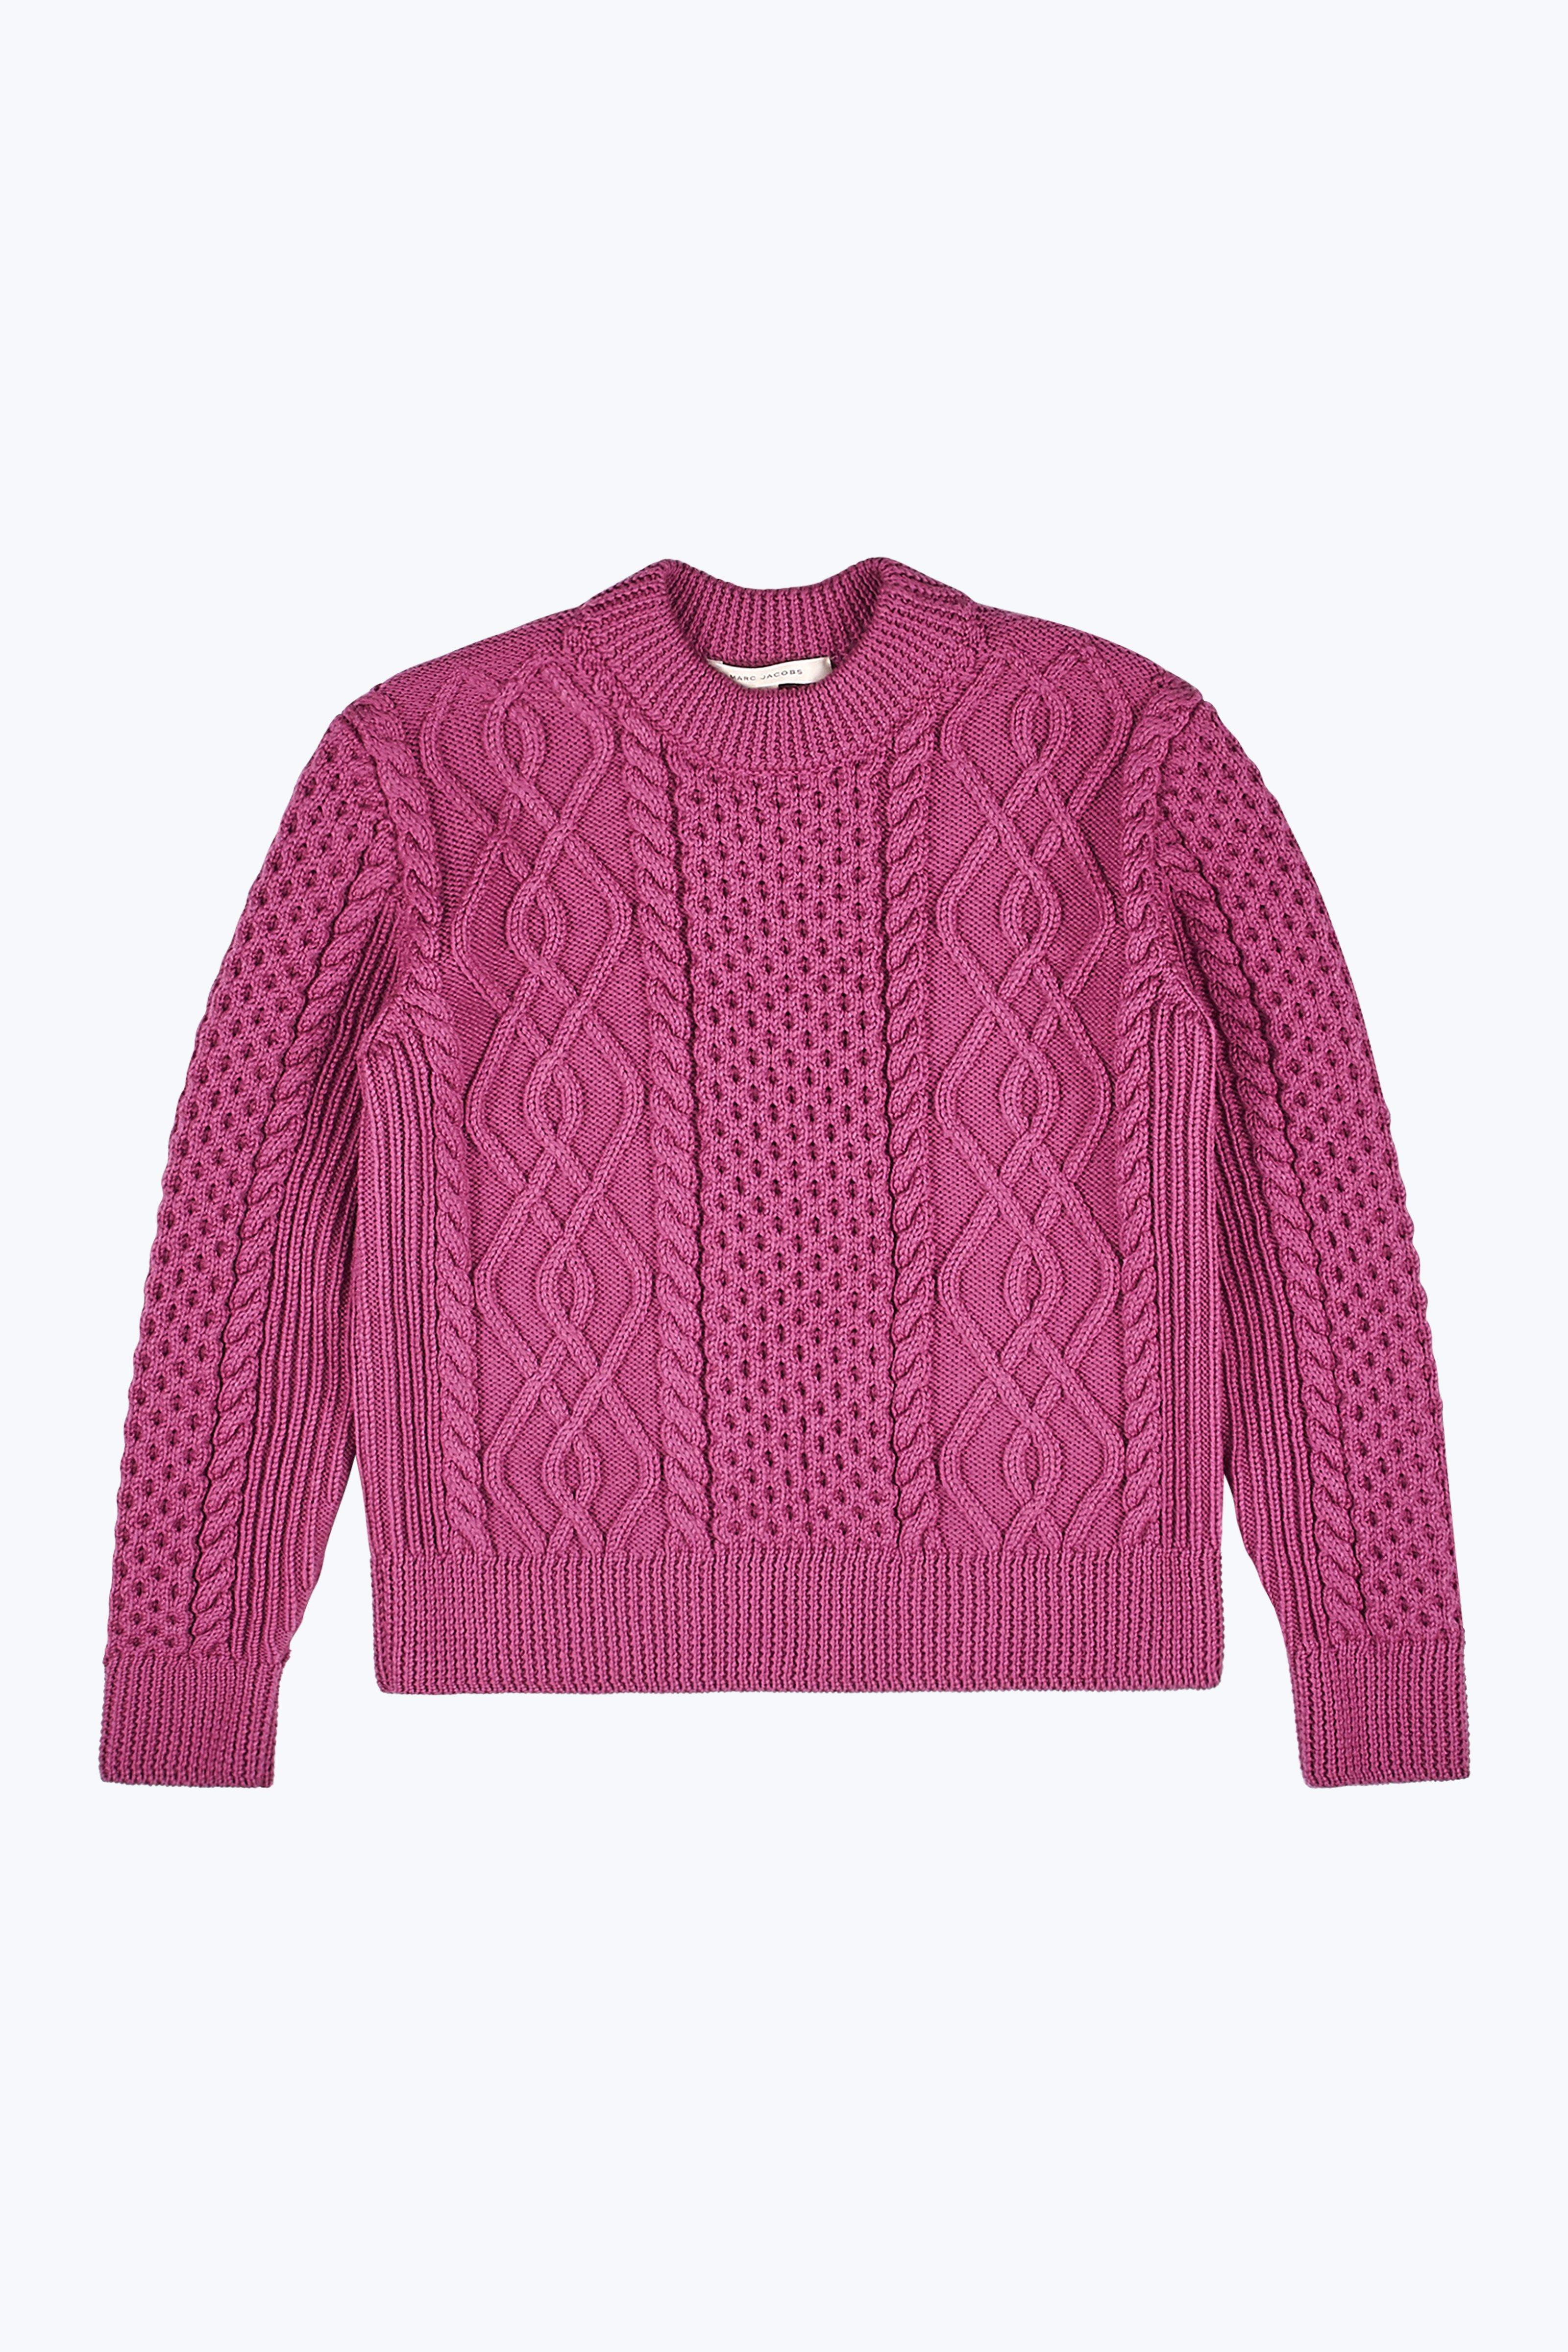 Marc Jacobs Merino Wool Cable Knit Sweater In Pink